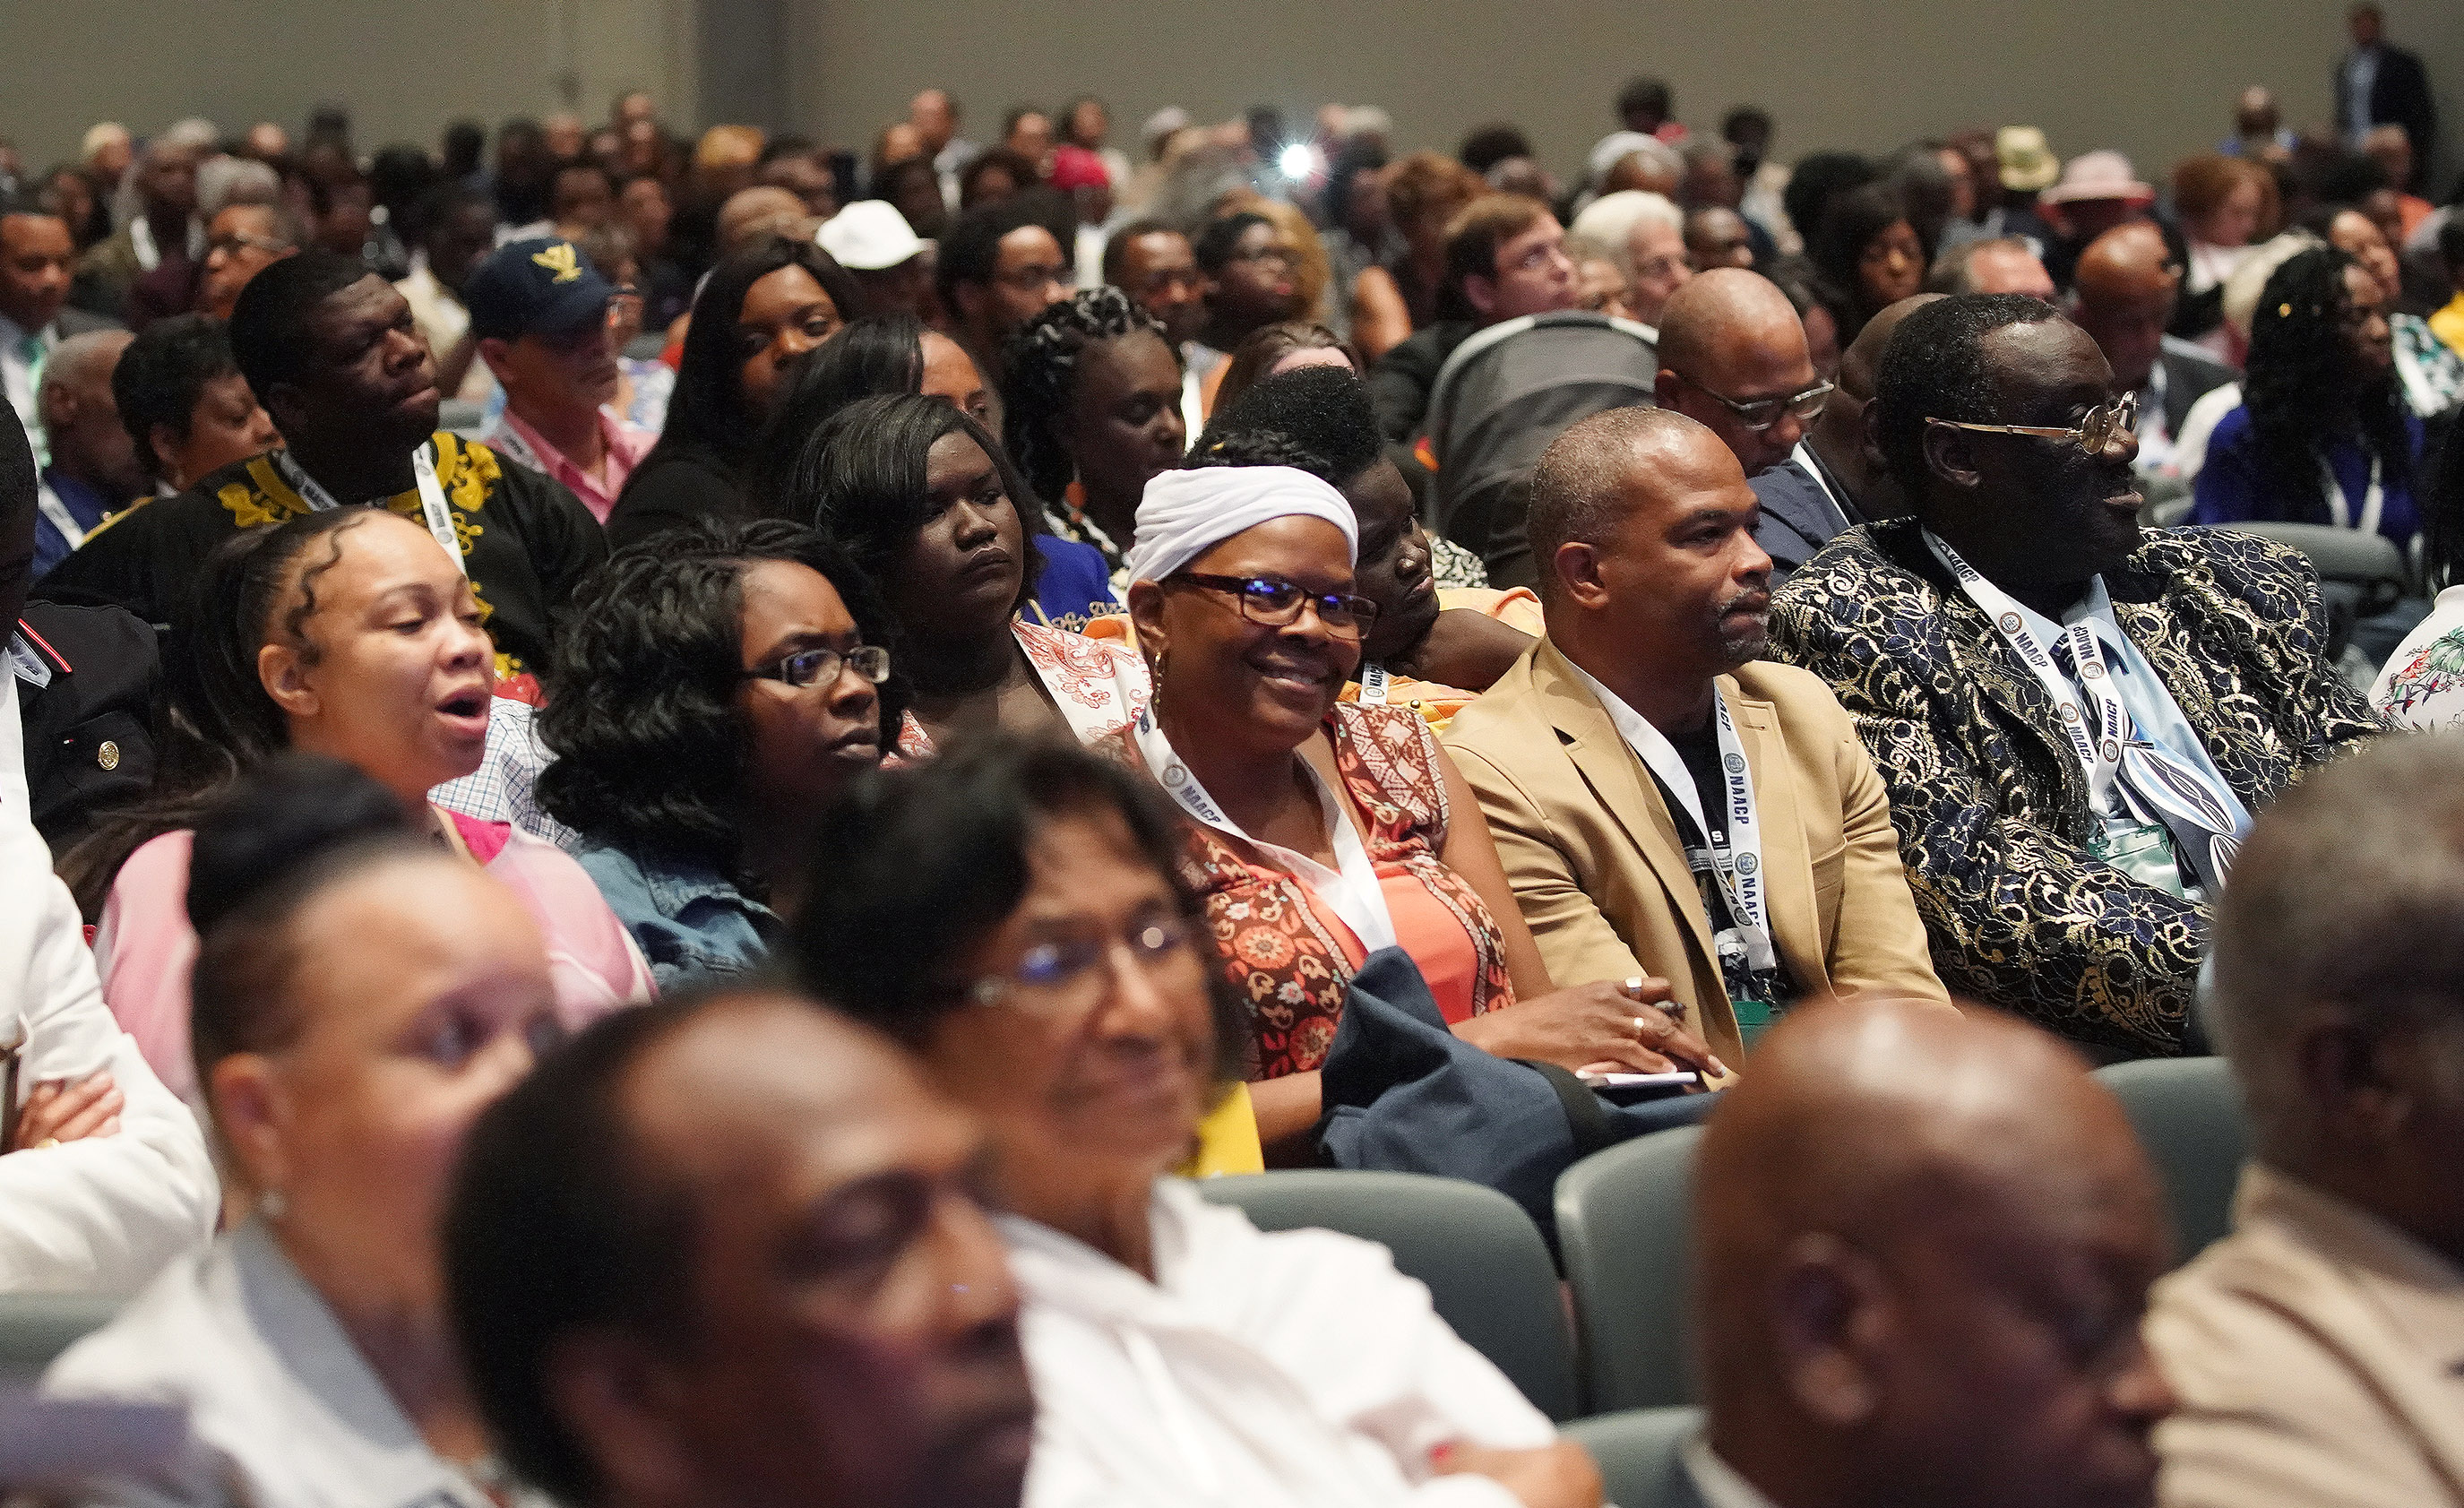 Attendees listen to speakers at the 110th annual national convention for the National Association for the Advancement of Colored People in Detroit on Sunday, July 21, 2019.